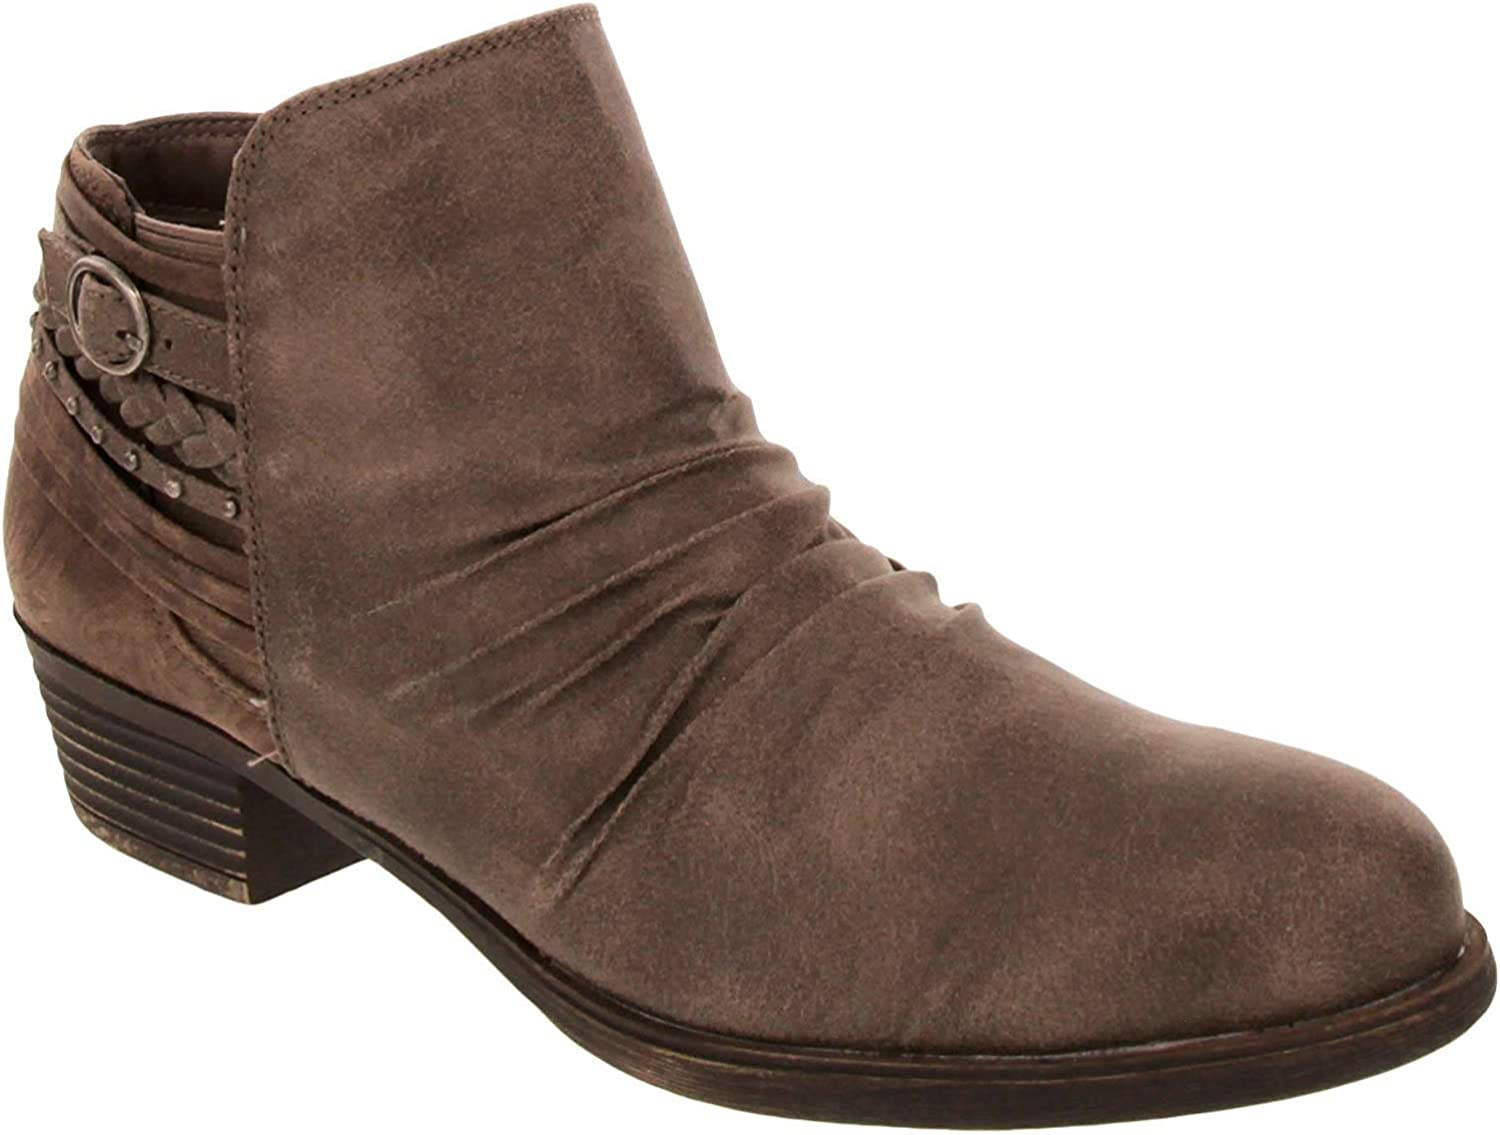 Rampage Booties for Women - Popular products Womens Heel with Boots Block Today's only Ankle